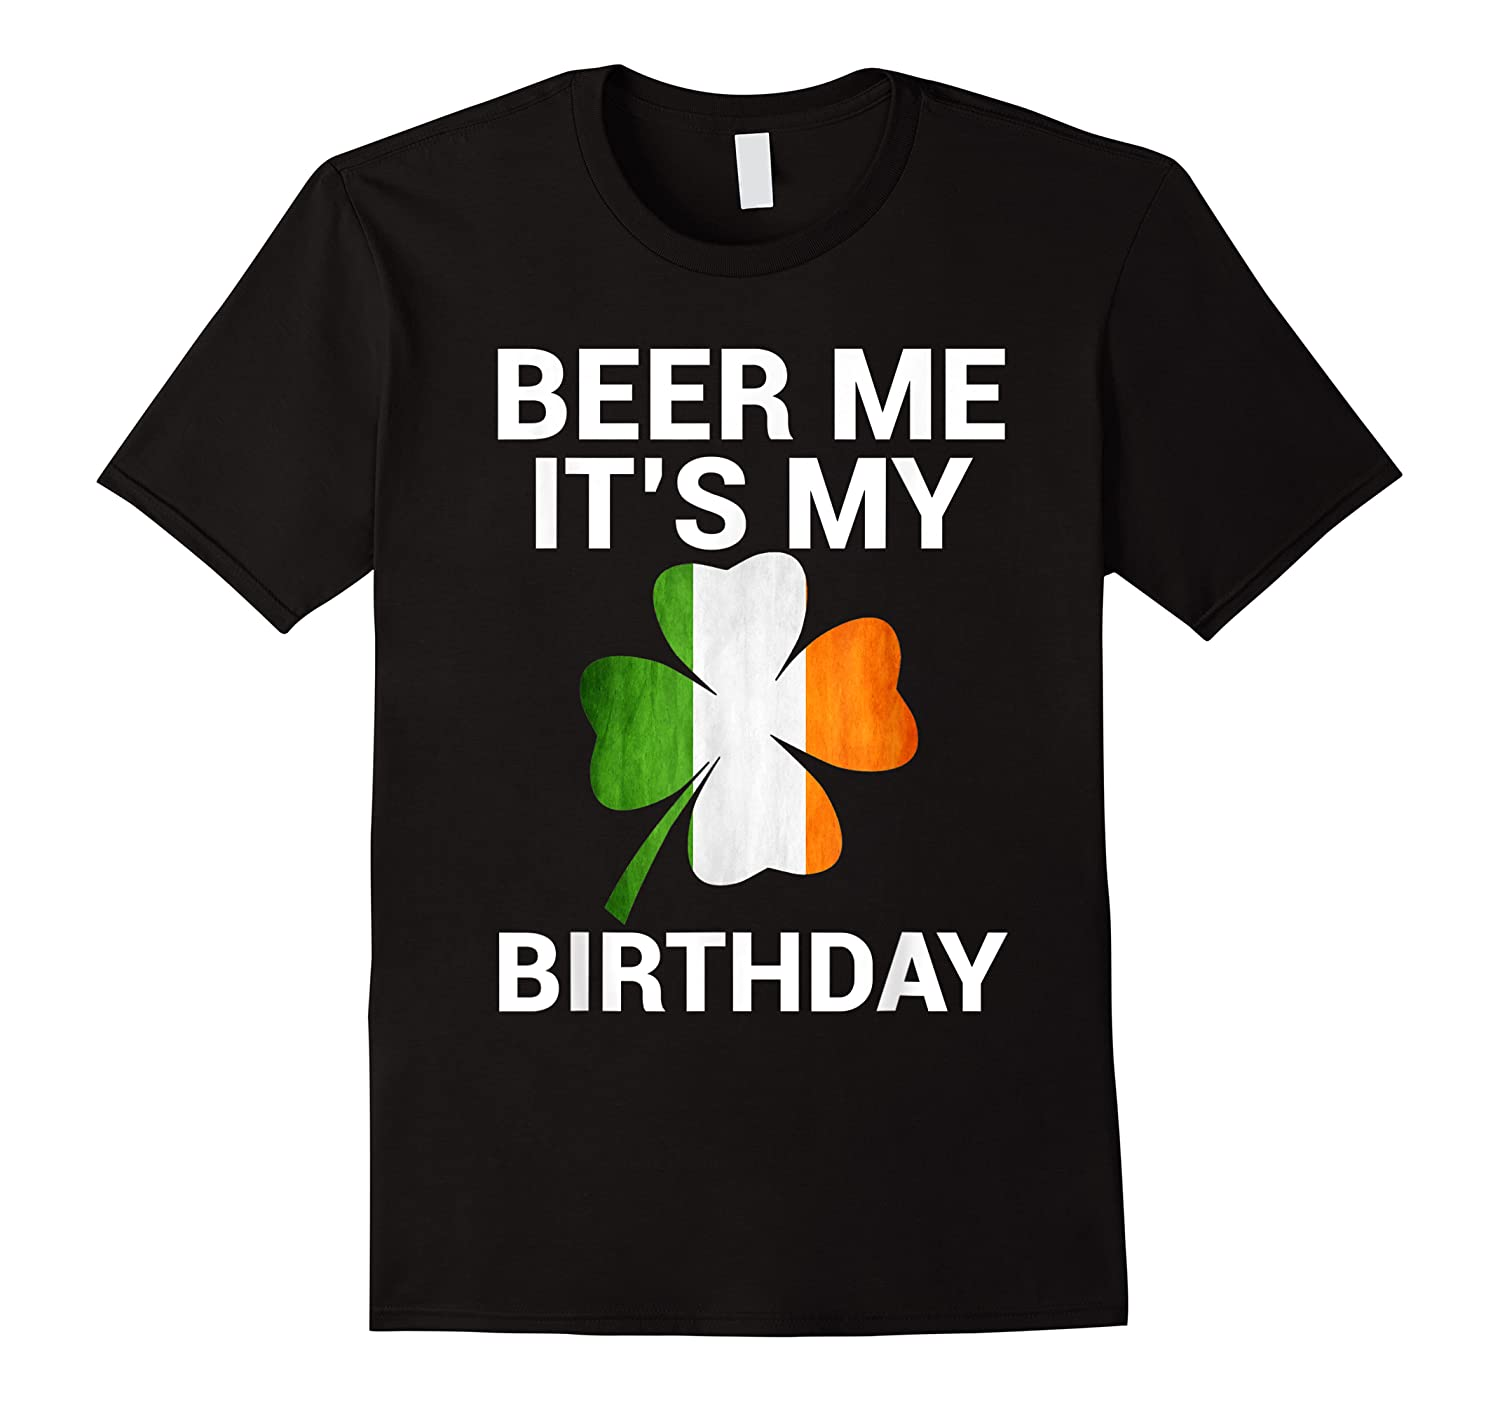 Beer Me It's My Birthday Ireland Flag Clover Gift Shirts